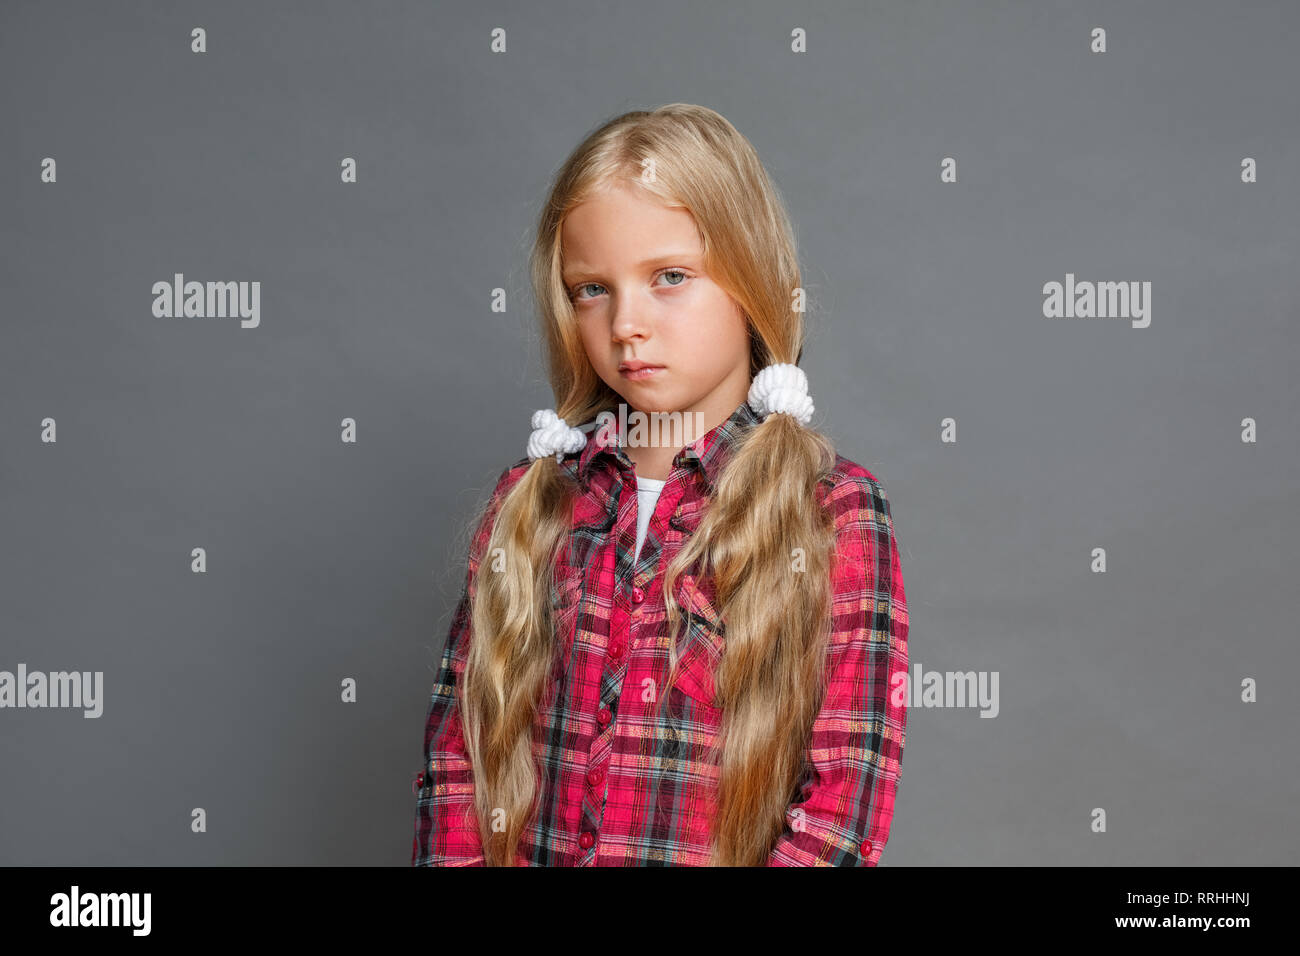 Swell Little Girl With Ponytails Standing Isolated On Grey Indifferent Schematic Wiring Diagrams Phreekkolirunnerswayorg